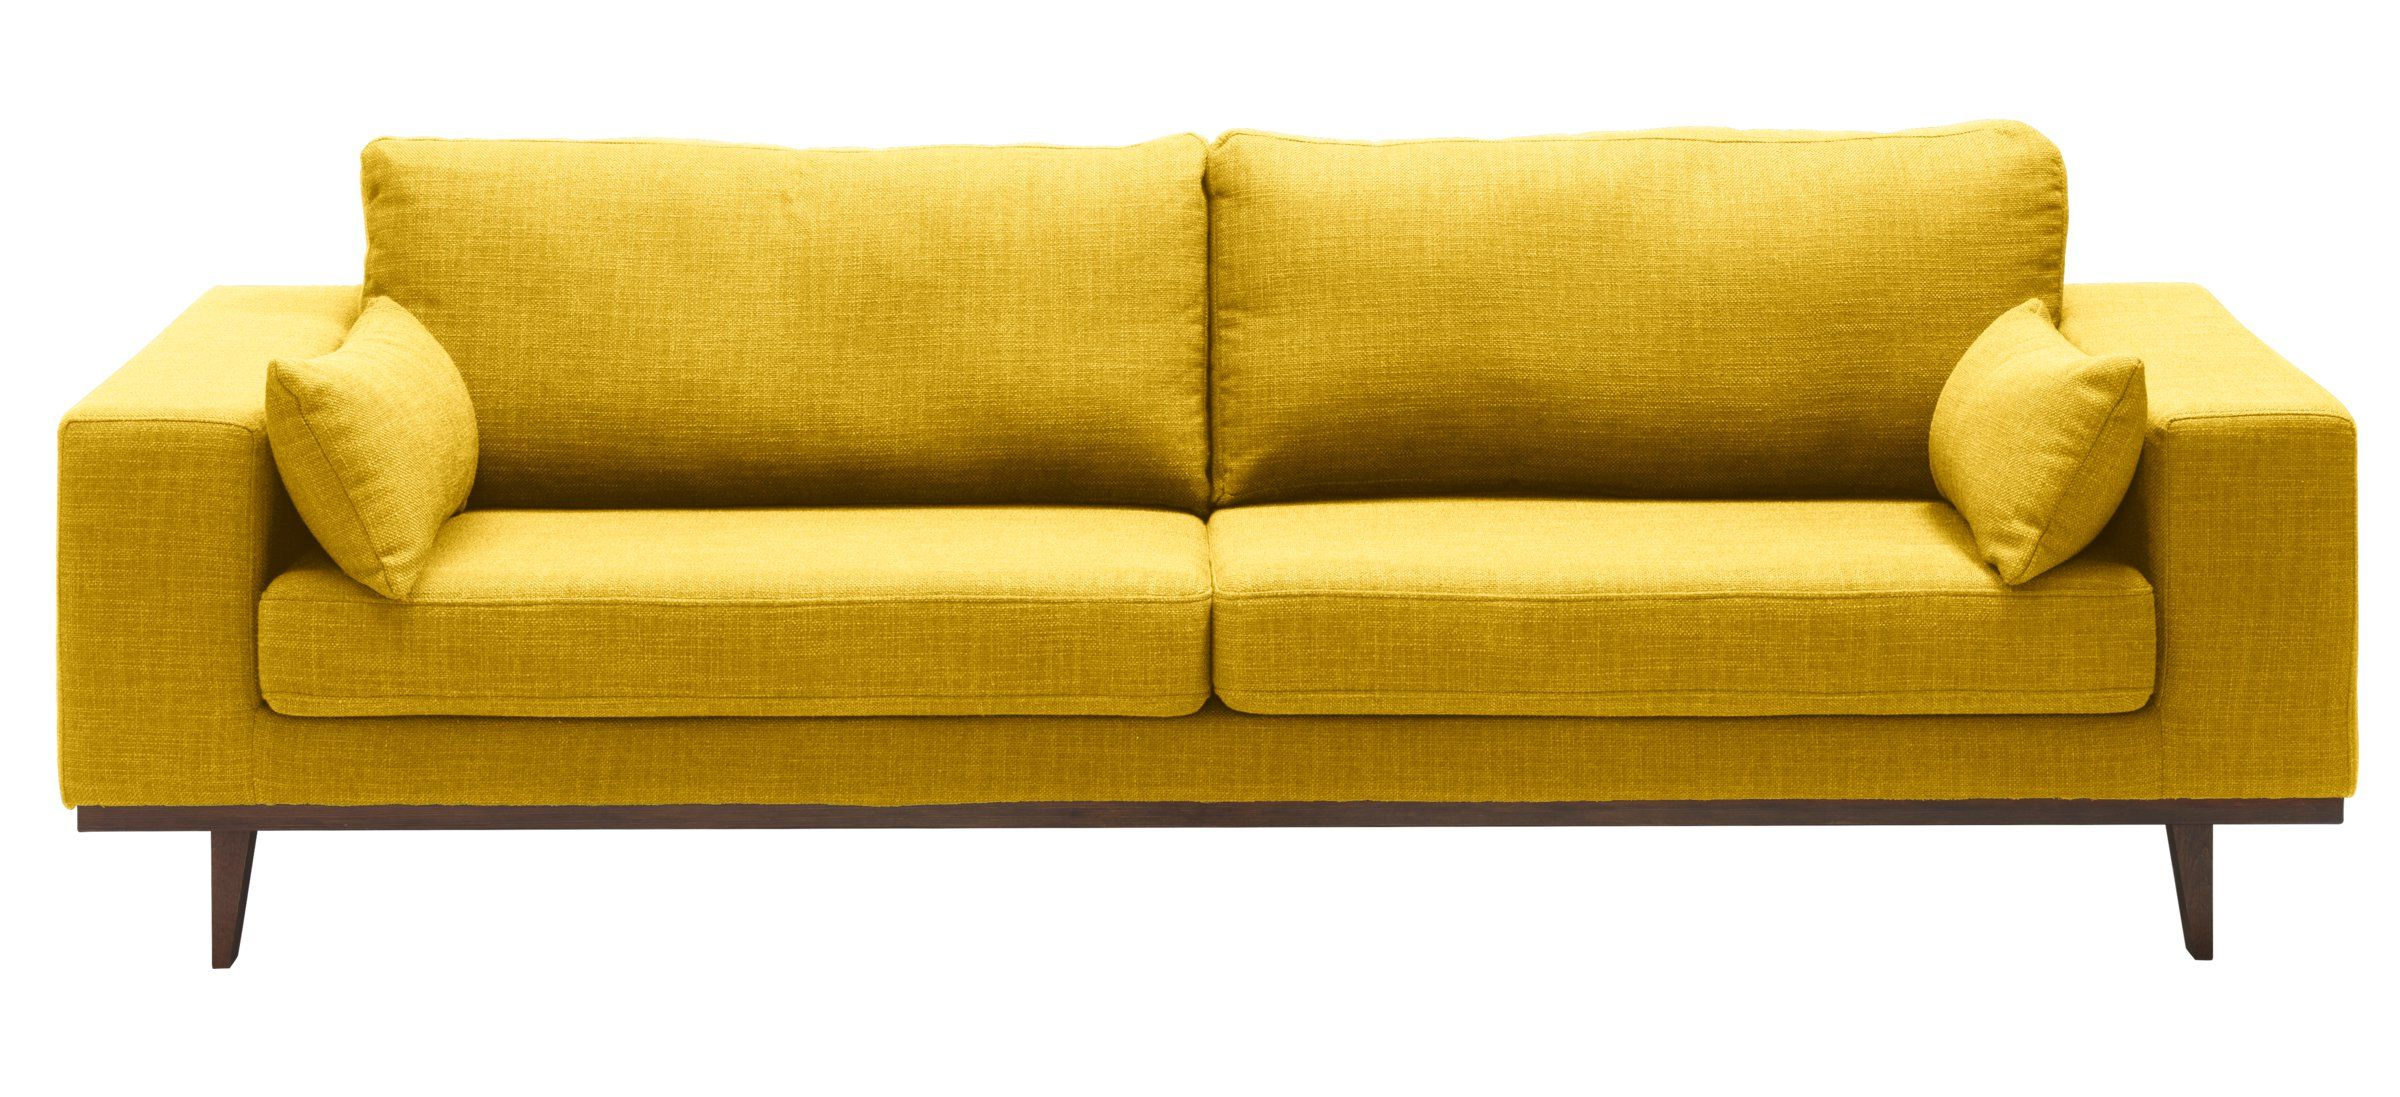 Bettsofa Interio Ch 3er Sofa Loritz 899 Interior Design 3er Sofa Sofas Sofa